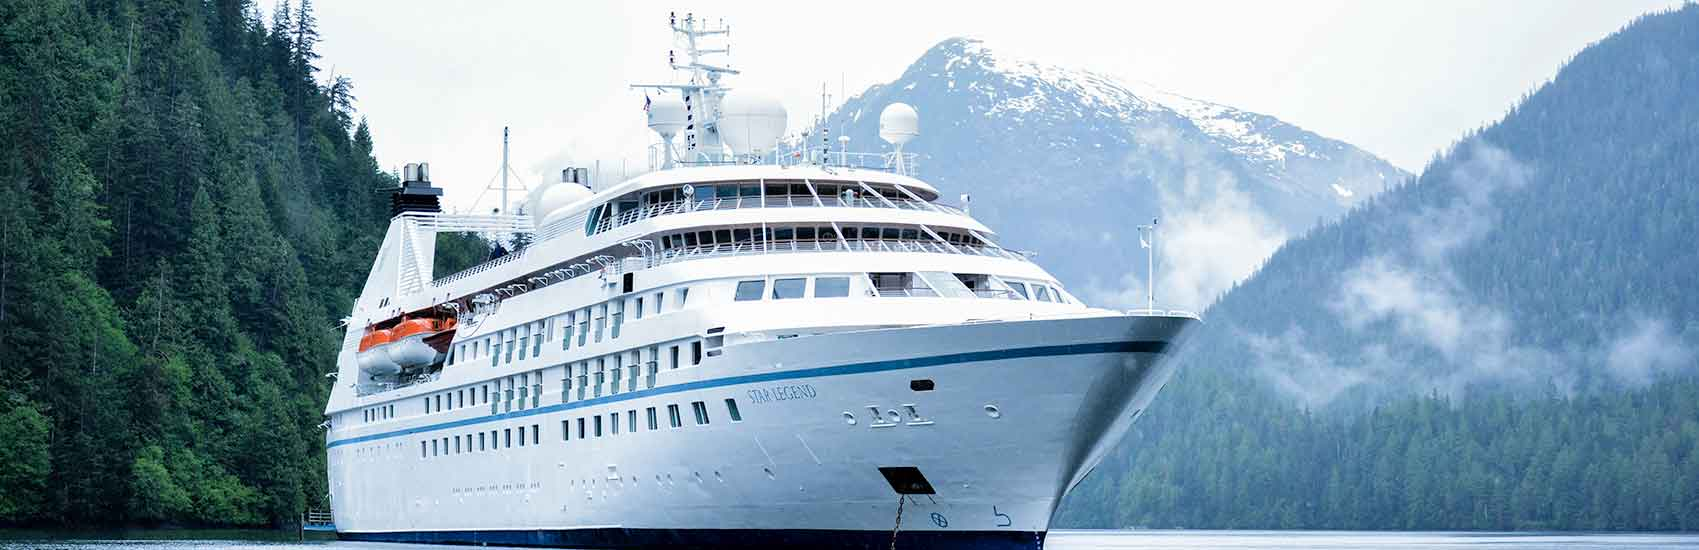 Exclusive Virtuoso Offer with Windstar Cruises 3